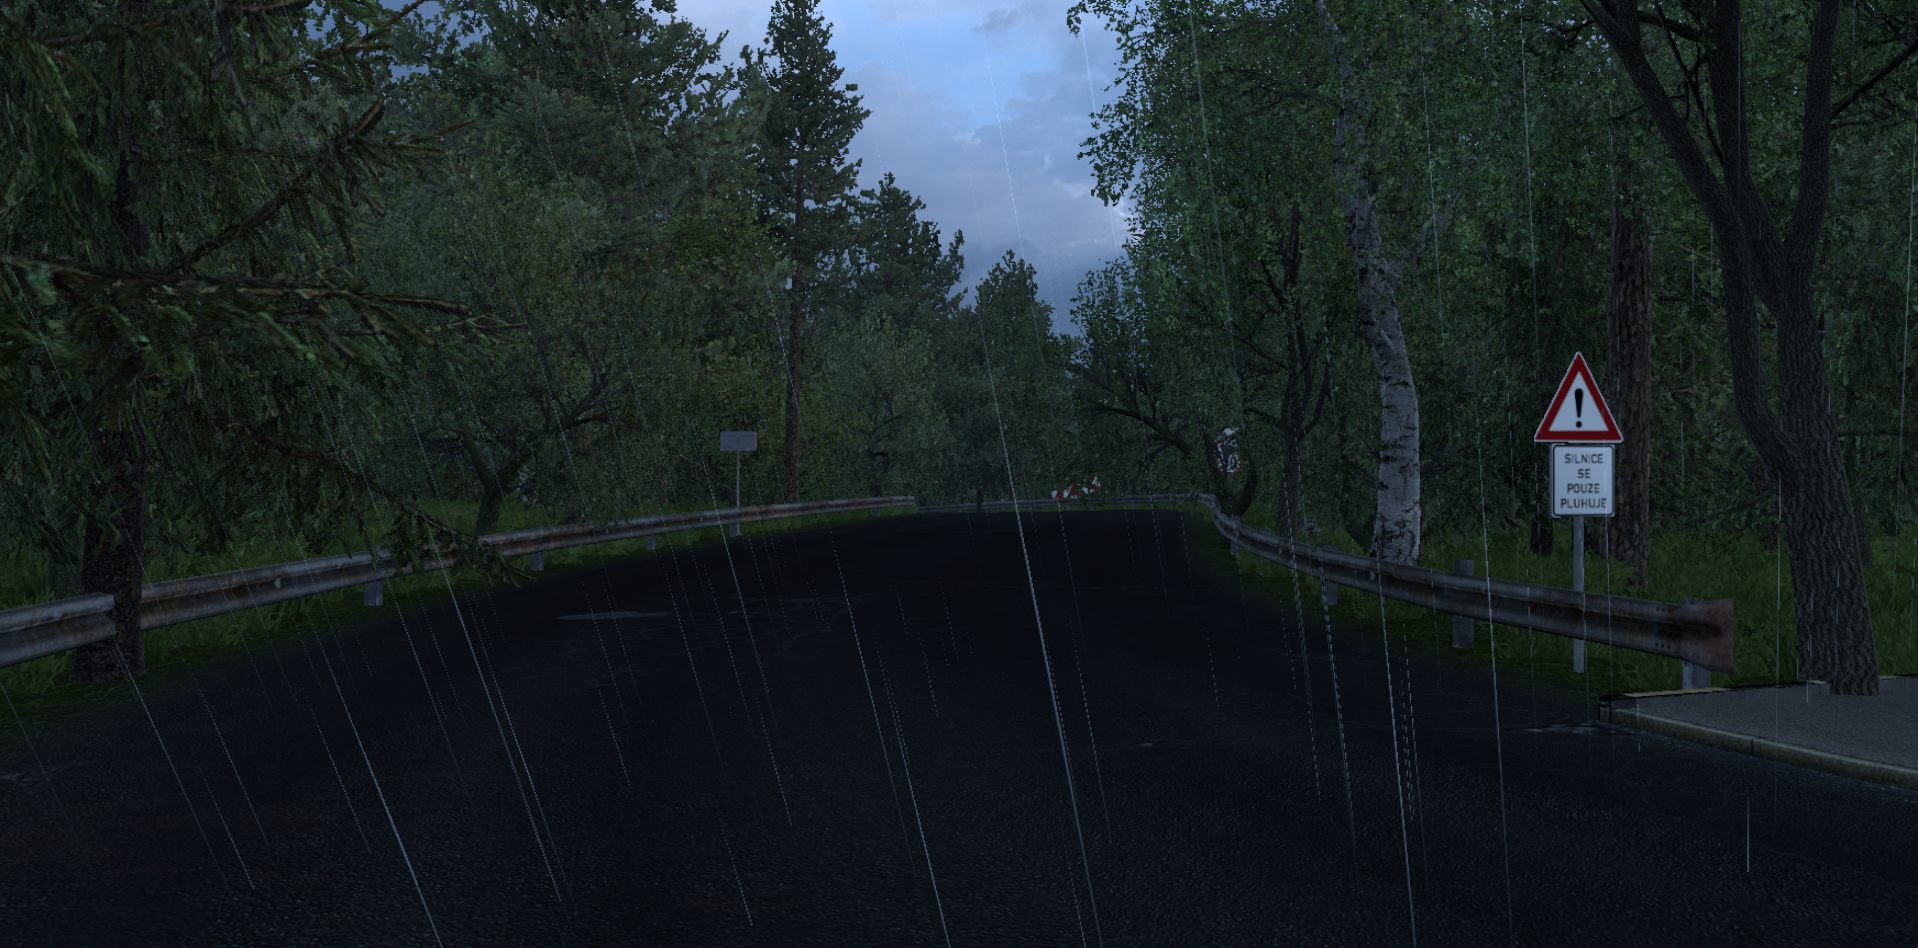 ets2_20210804_144518_00.png